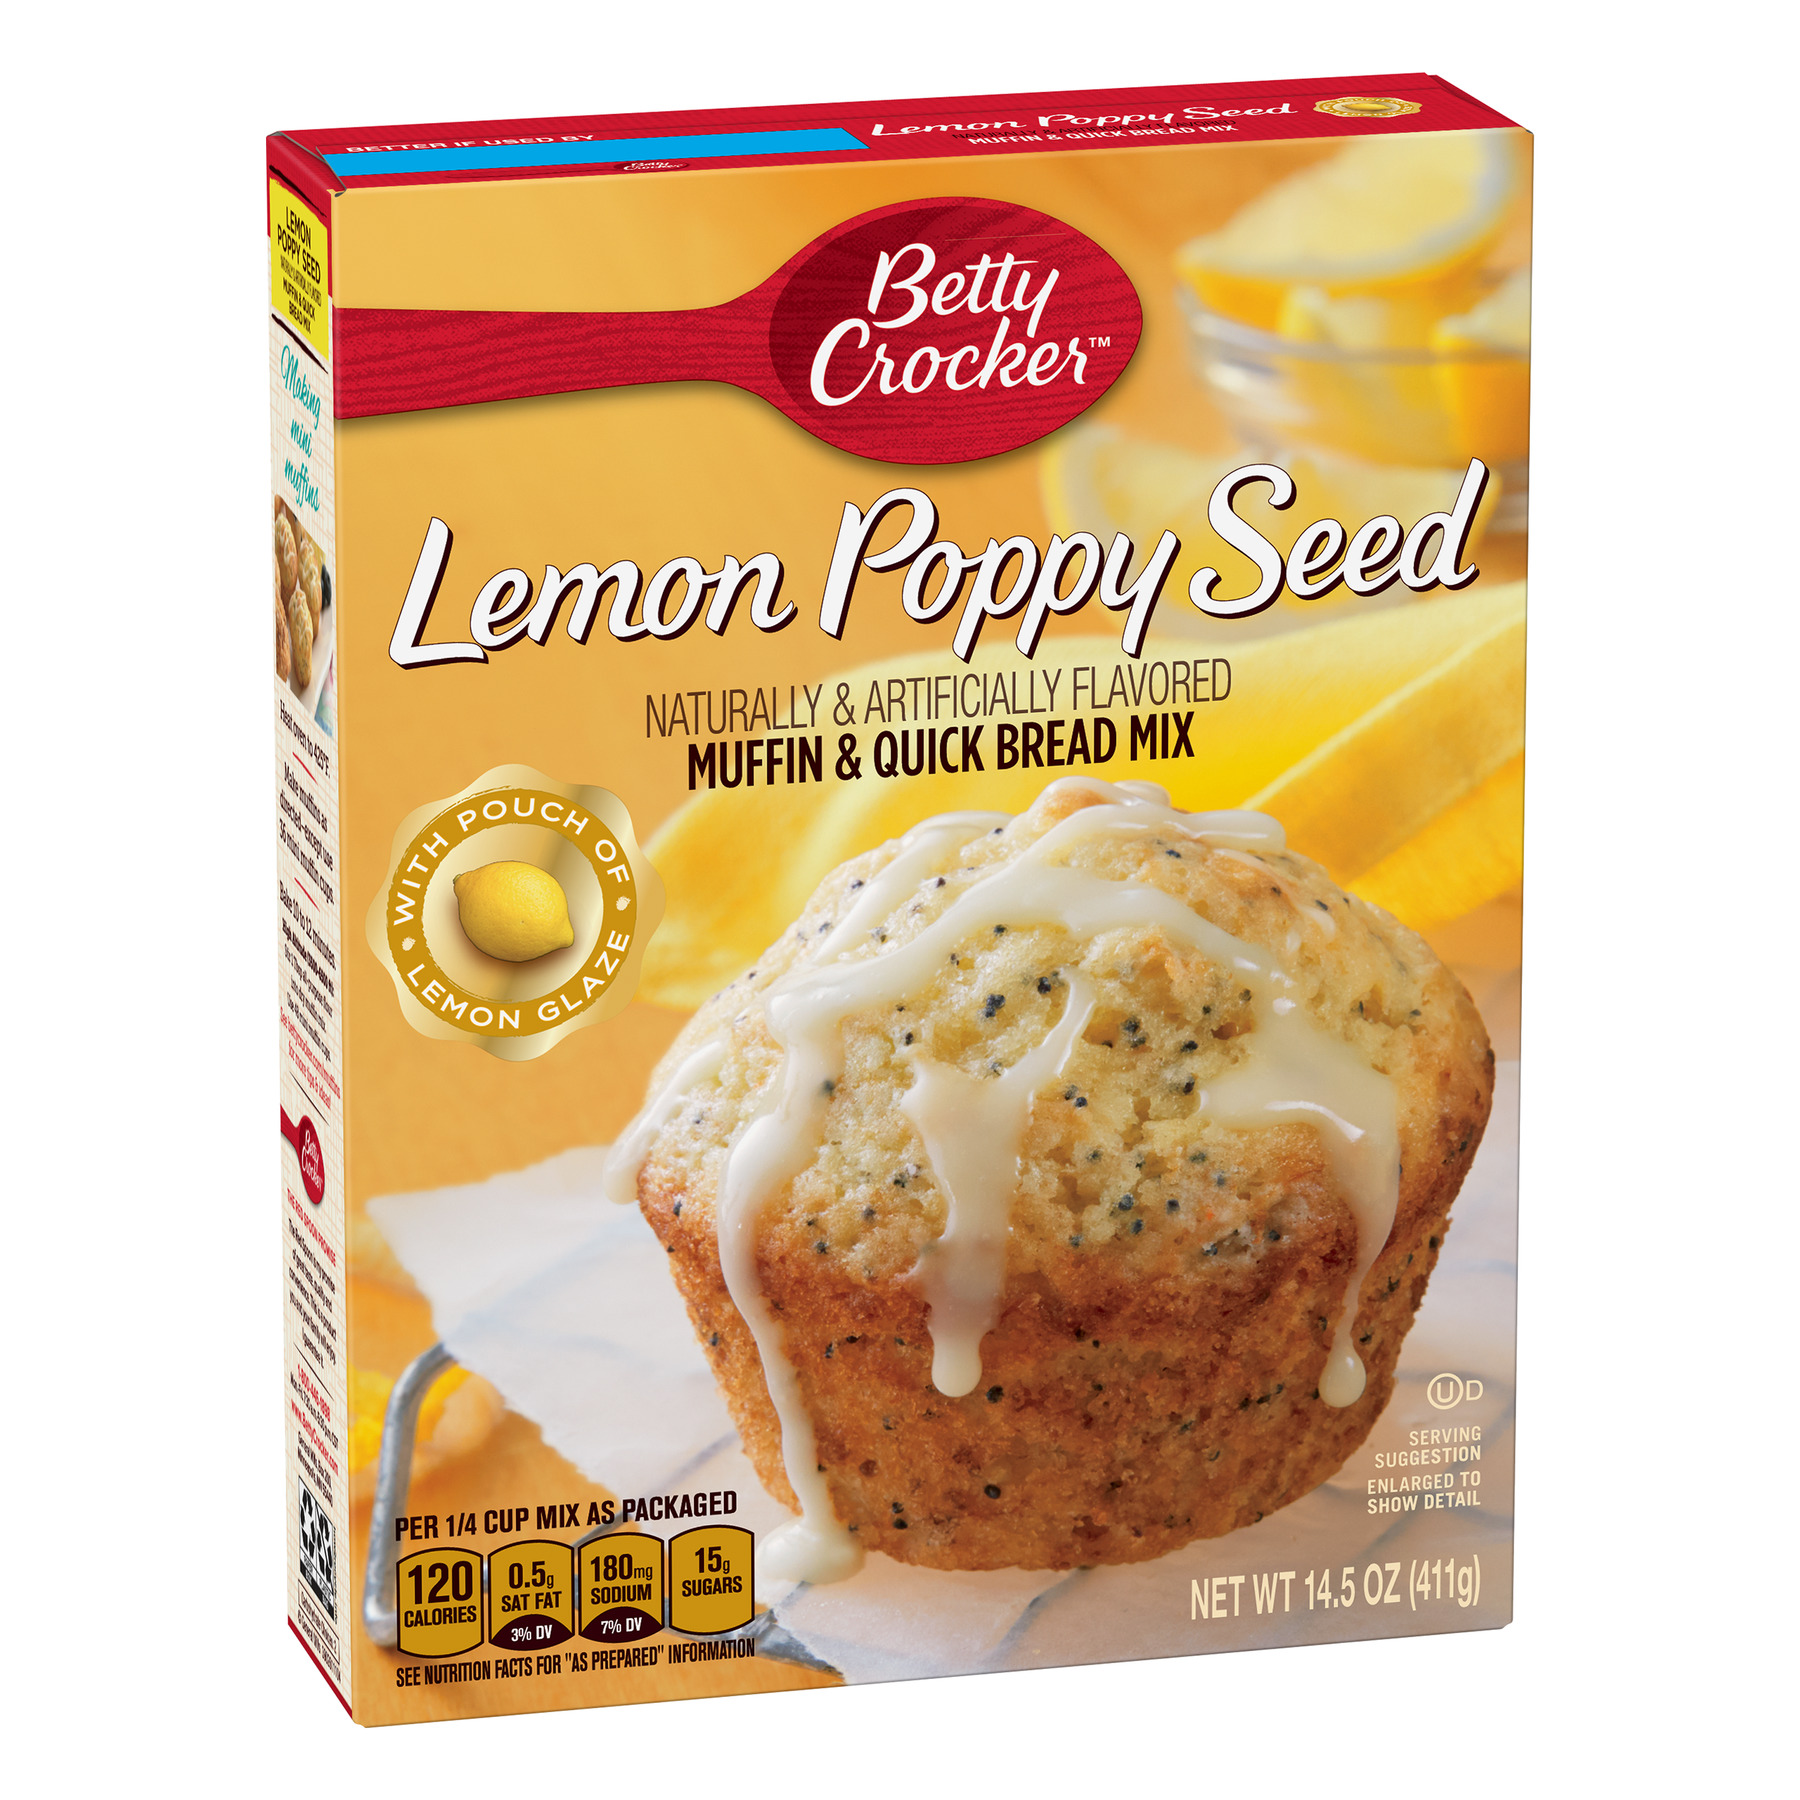 (12 Pack) Betty Crocker Lemon Poppy Seed Muffin and Quick Bread Mix, 14.5 oz